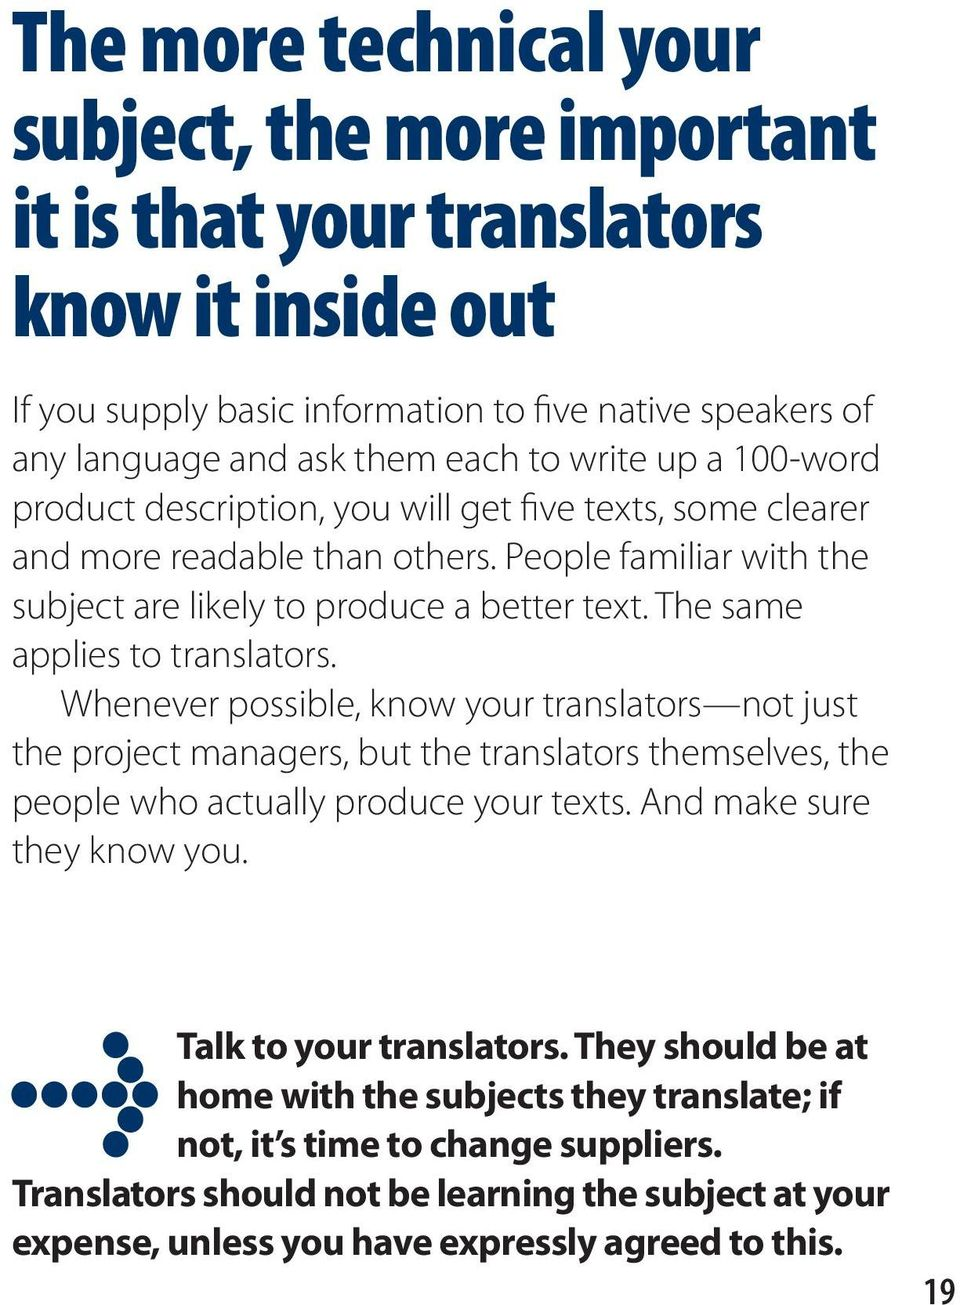 The same applies to translators. Whenever possible, know your translators not just the project managers, but the translators themselves, the people who actually produce your texts.